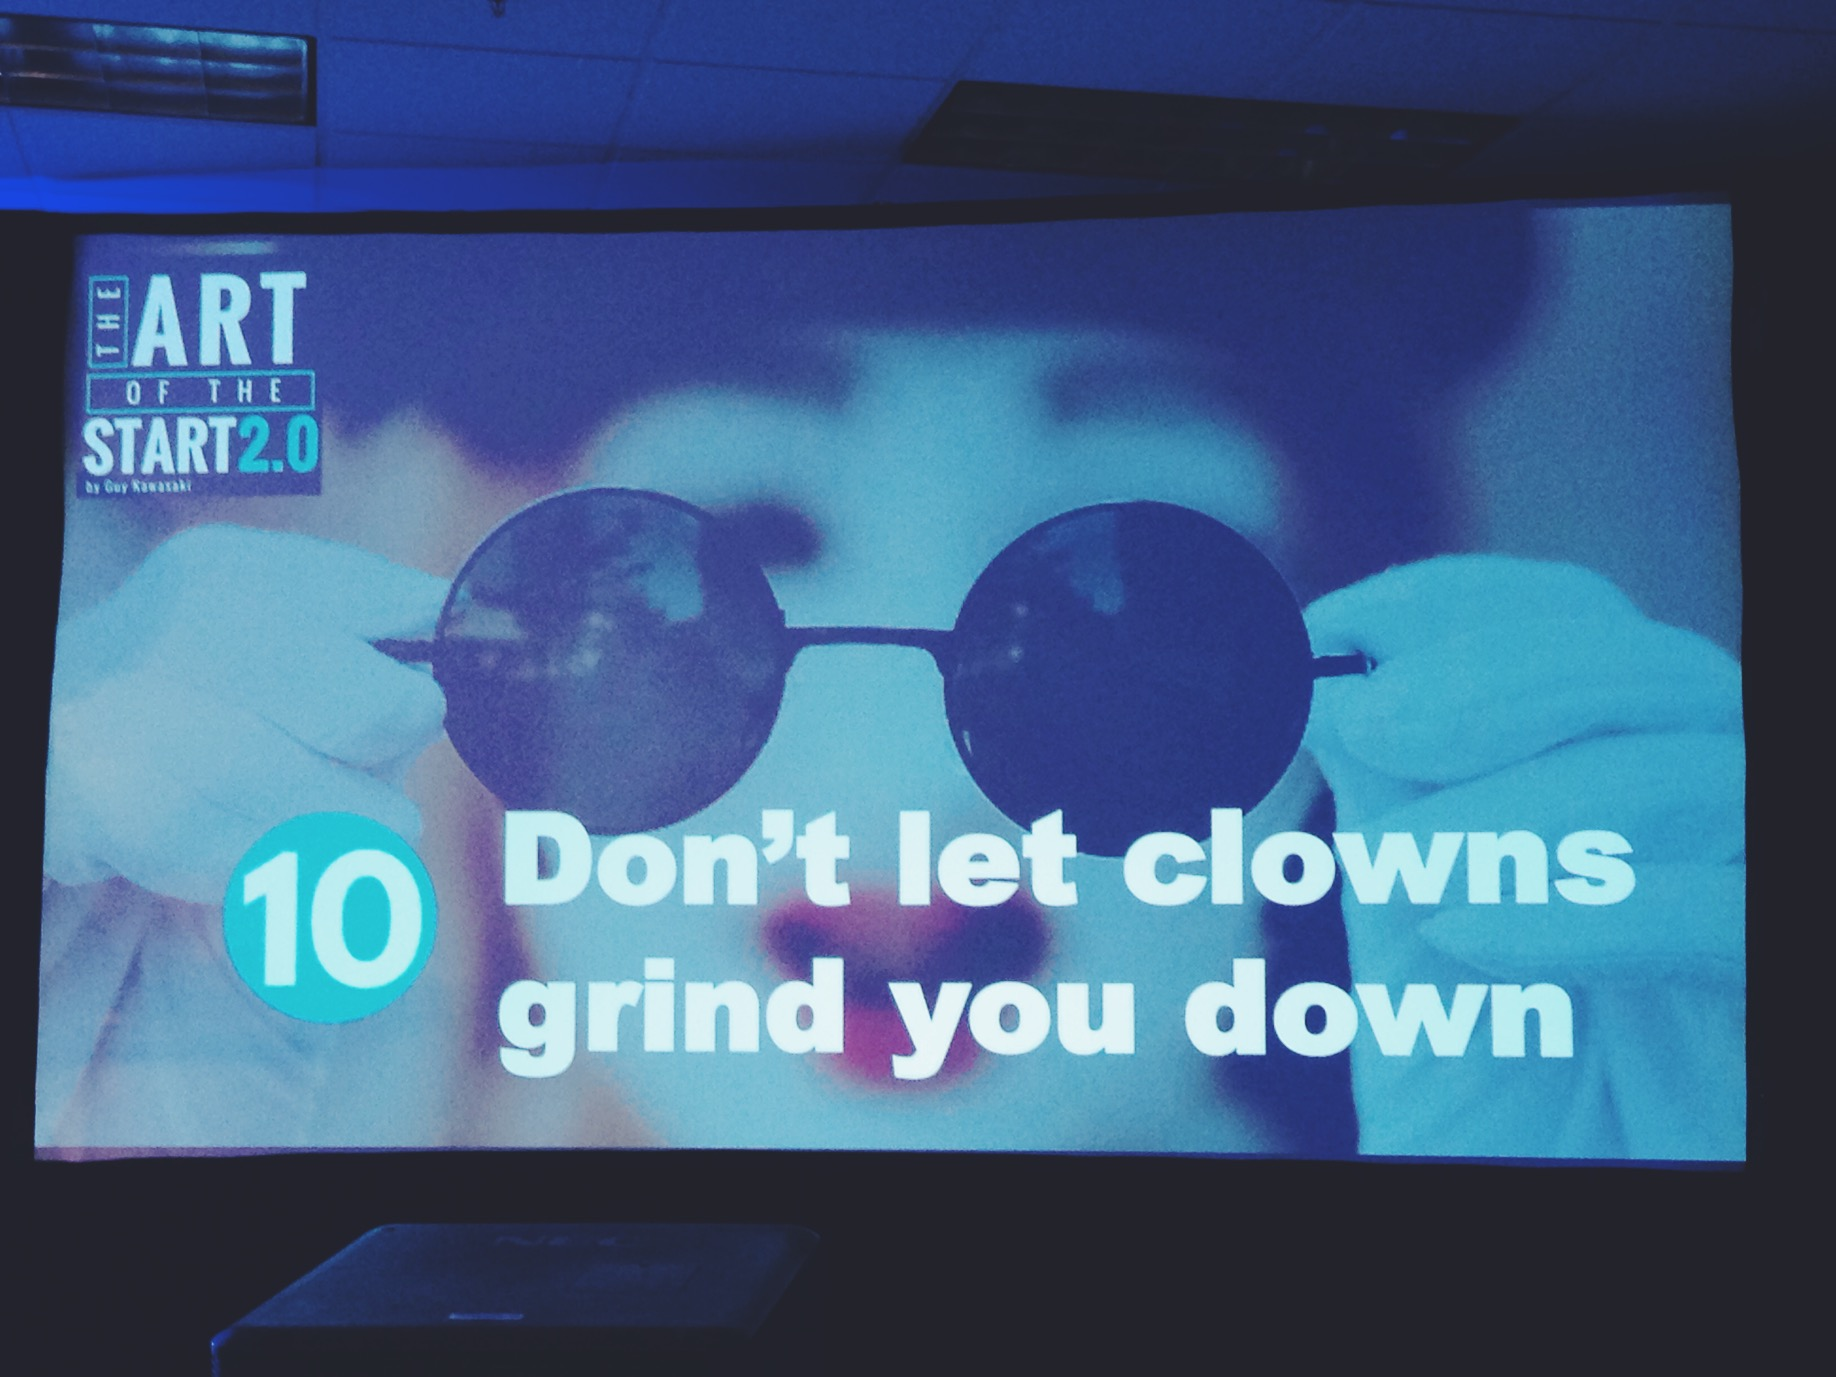 Guy Kawasaki - Don't let clowns grind you down